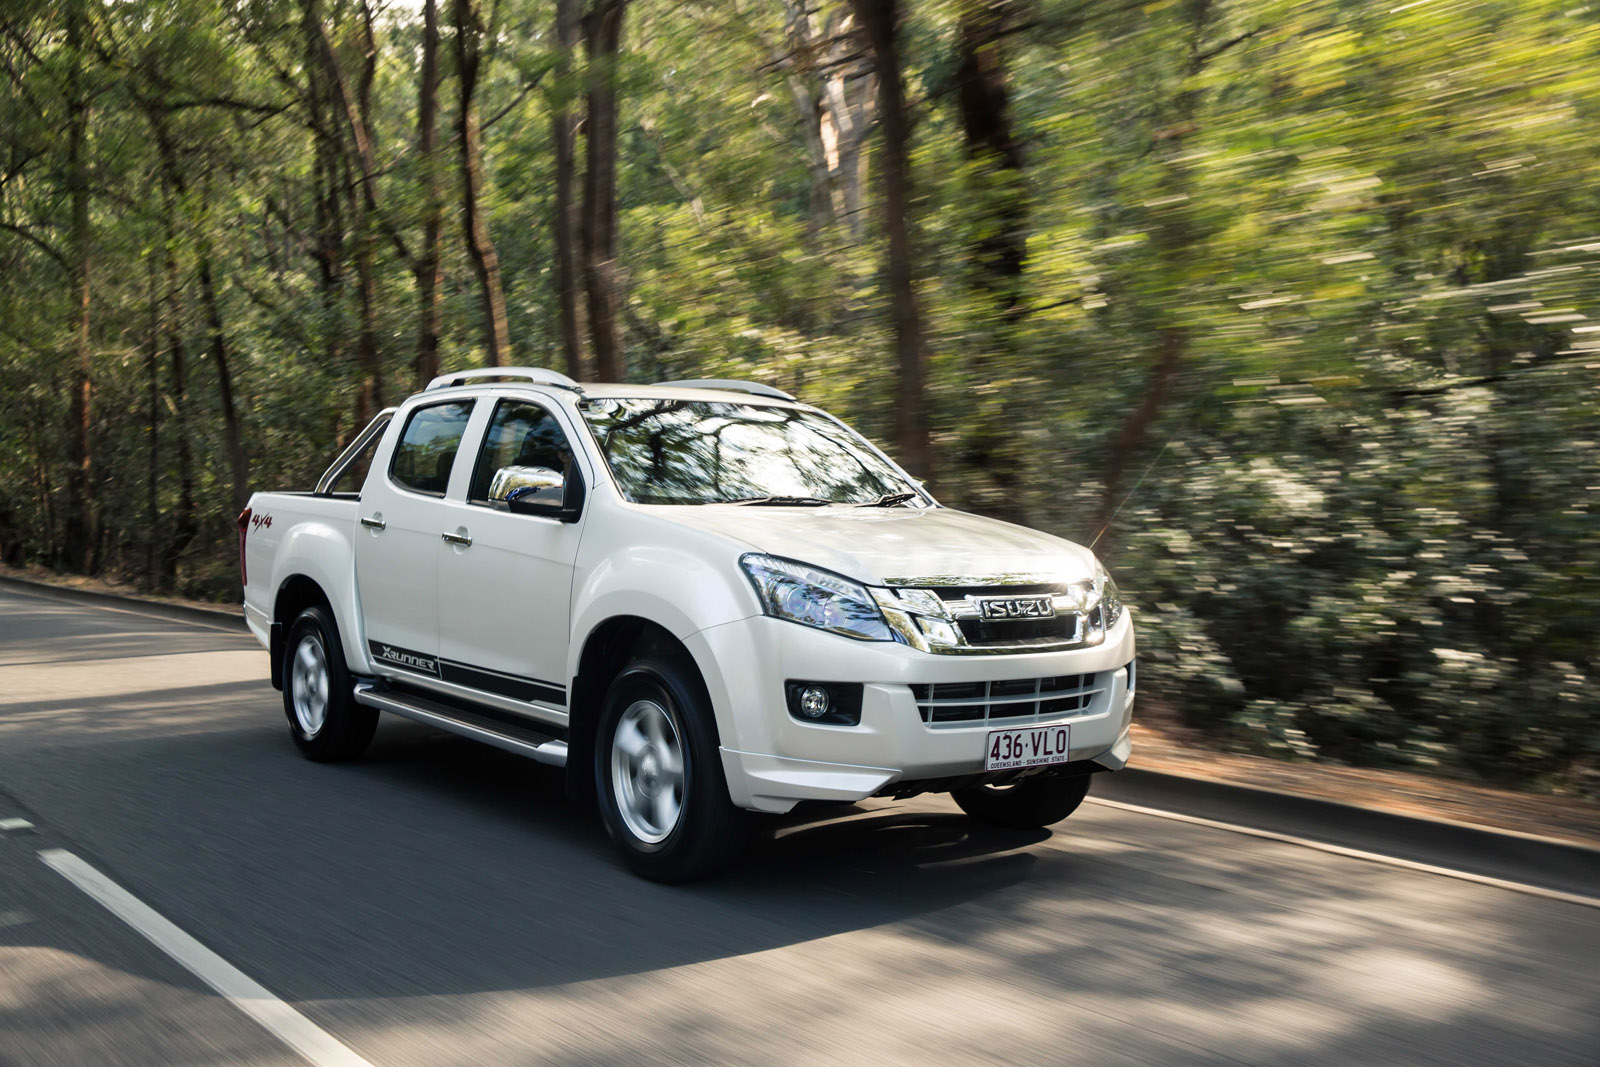 isuzu australia limited Search for new & used isuzu cars for sale in australia read isuzu car reviews  and compare isuzu prices and features at carsalescomau  offered by or on  behalf of carsalescom limited carsales takes no responsibility in relation to any  offer.